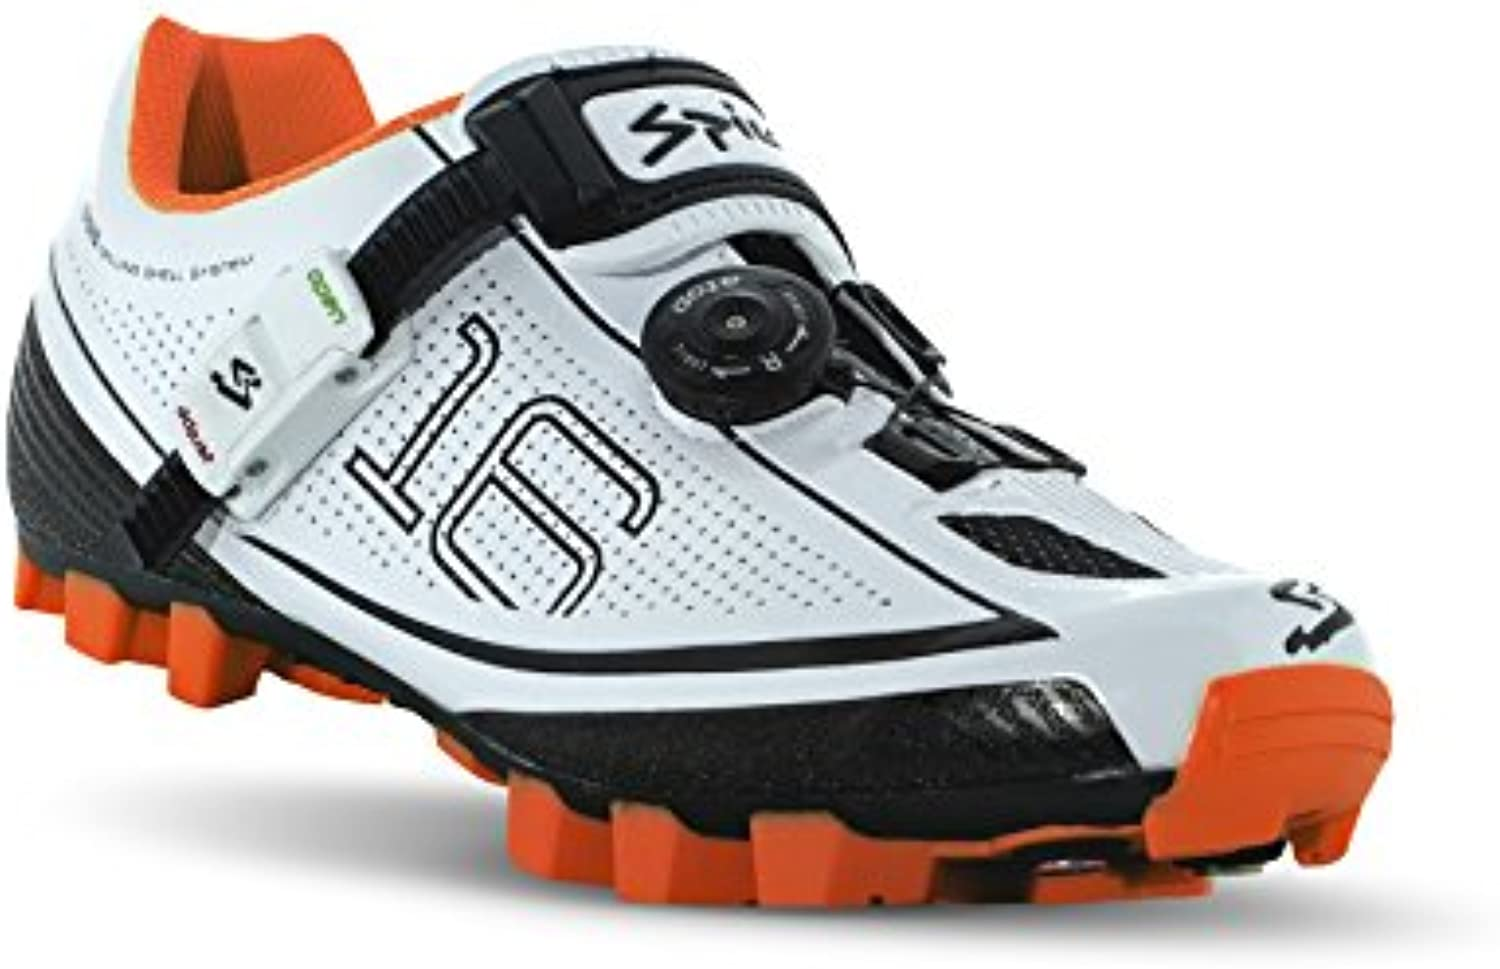 Spiuk 16 MTB - Zapatillas Unisex, Color Blanco/Naranja  -